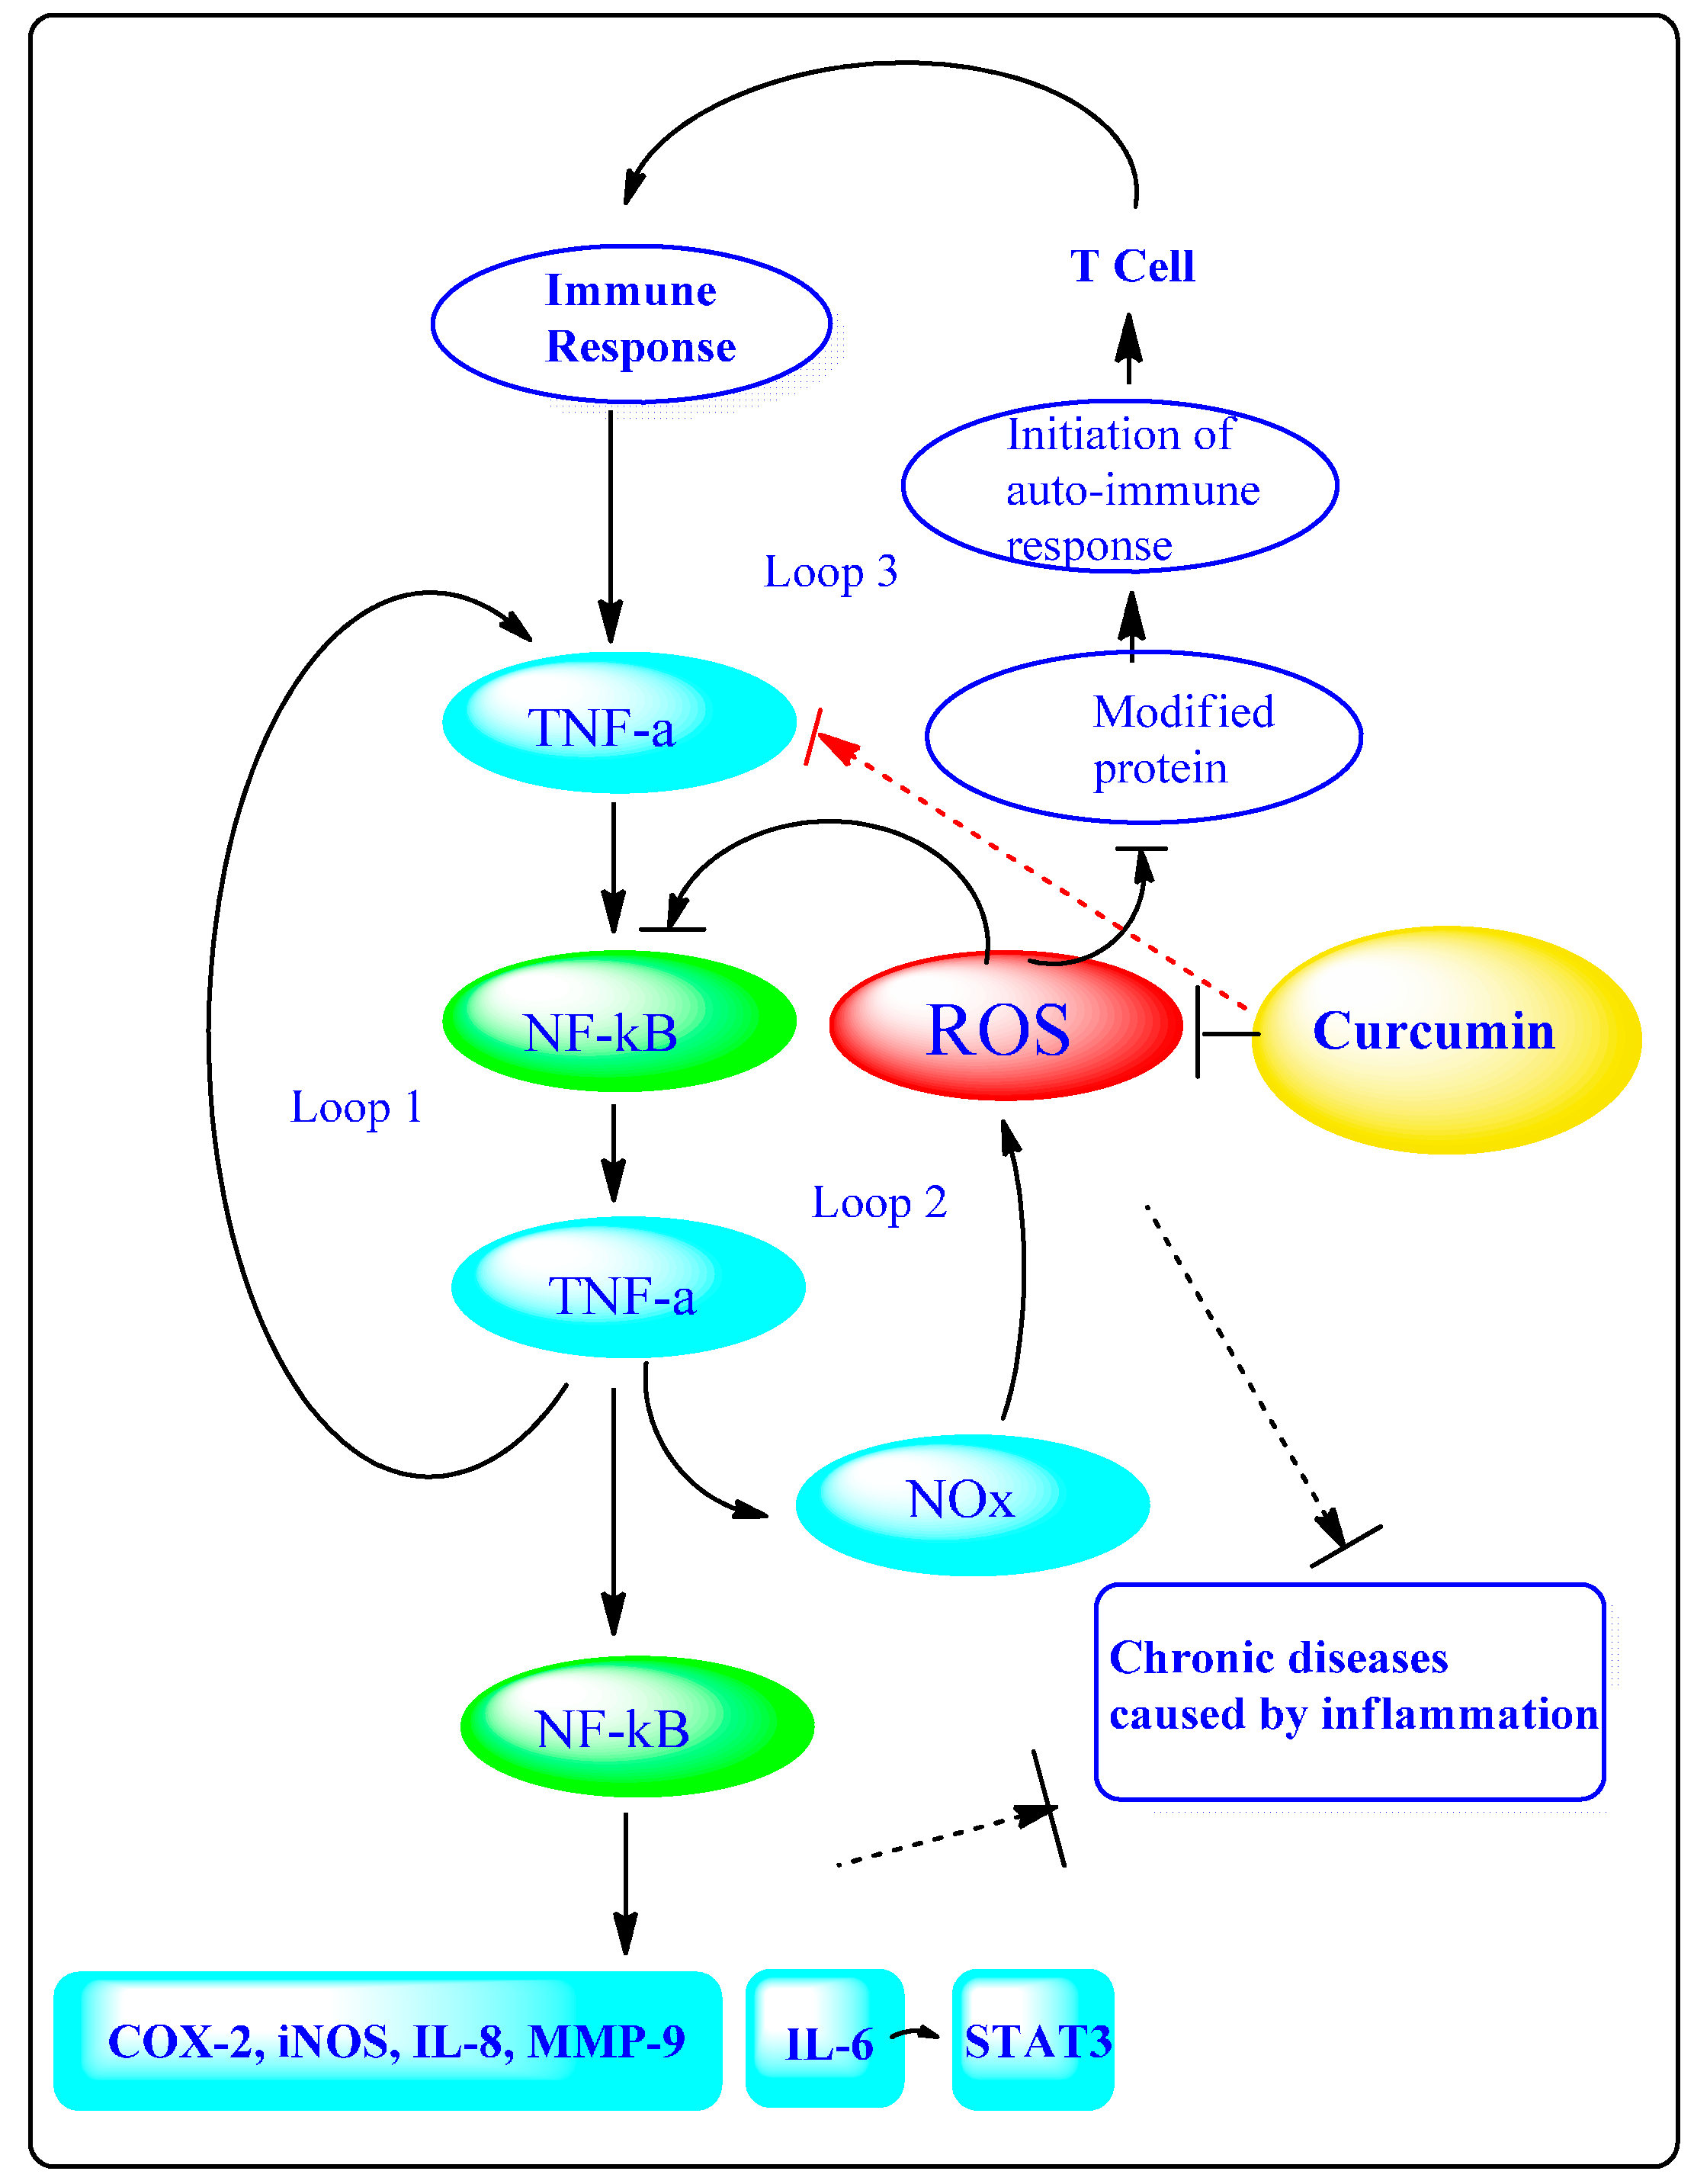 Molecules | Free Full-Text | Curcumin, Inflammation, and